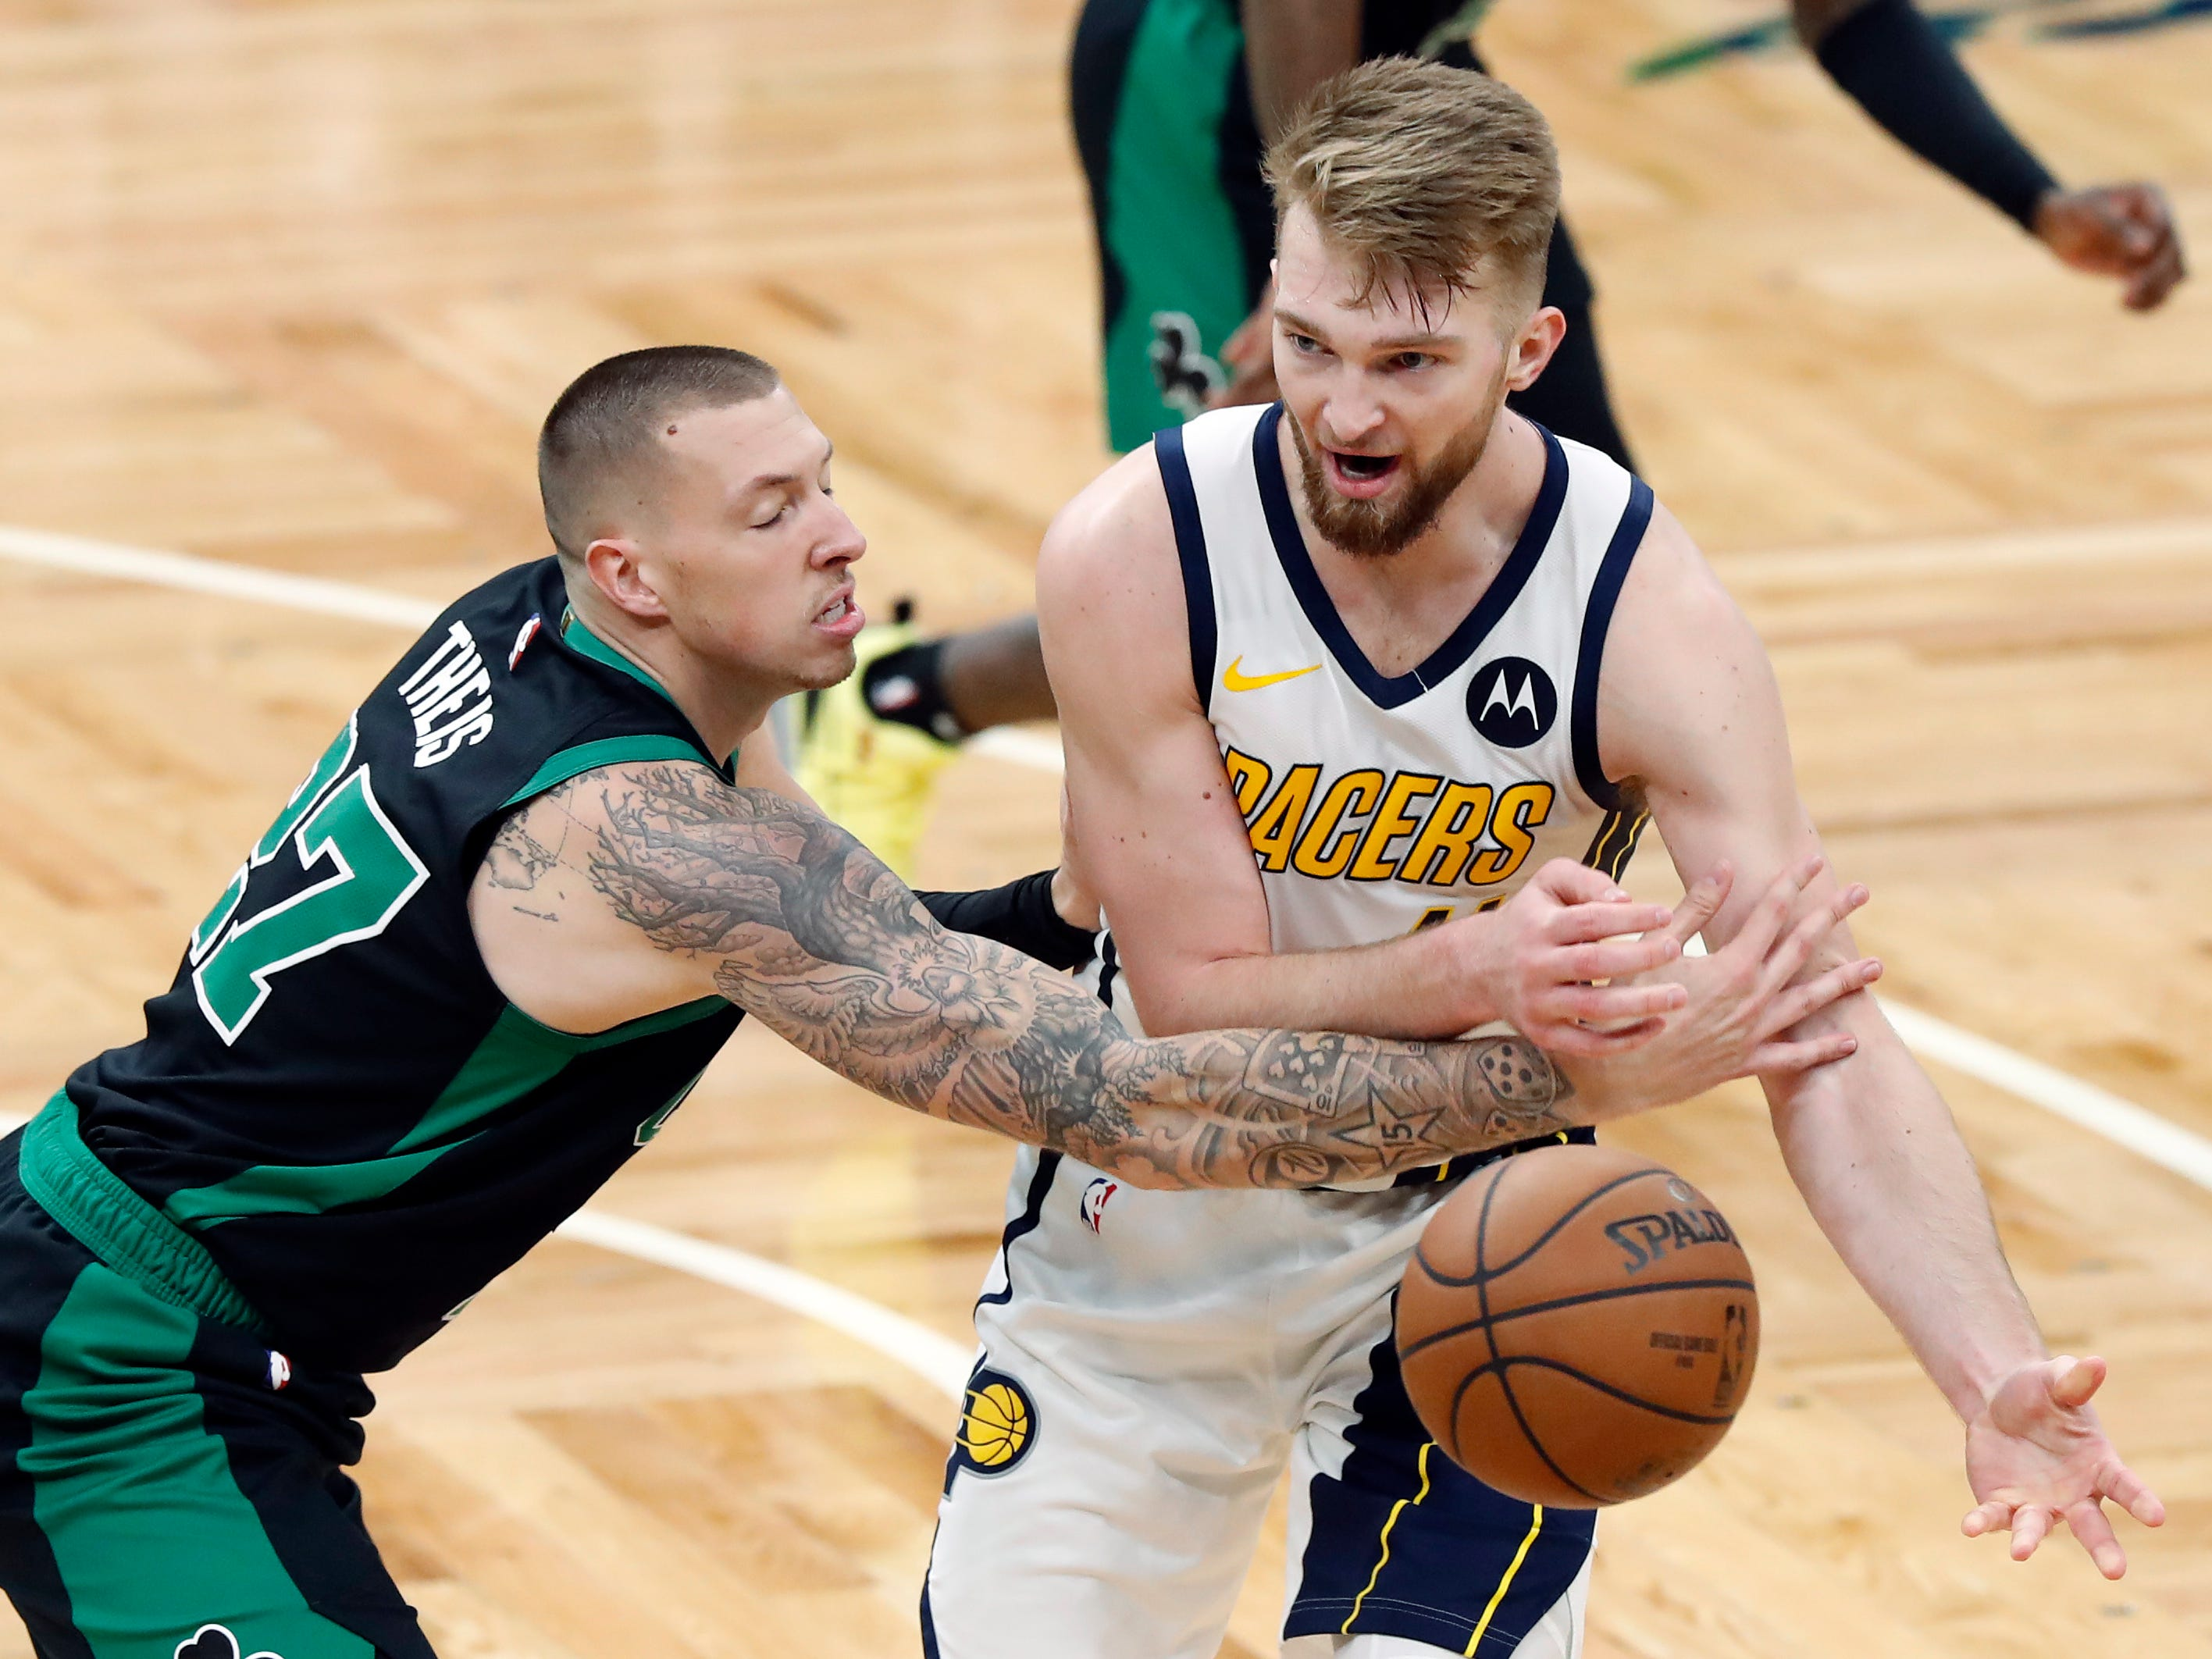 Boston Celtics' Daniel Theis, left, knocks the ball away from Indiana Pacers' Domantas Sabonis during the third quarter in Game 1 of a first-round NBA basketball playoff series, Sunday, April 14, 2019, in Boston. (AP Photo/Winslow Townson)